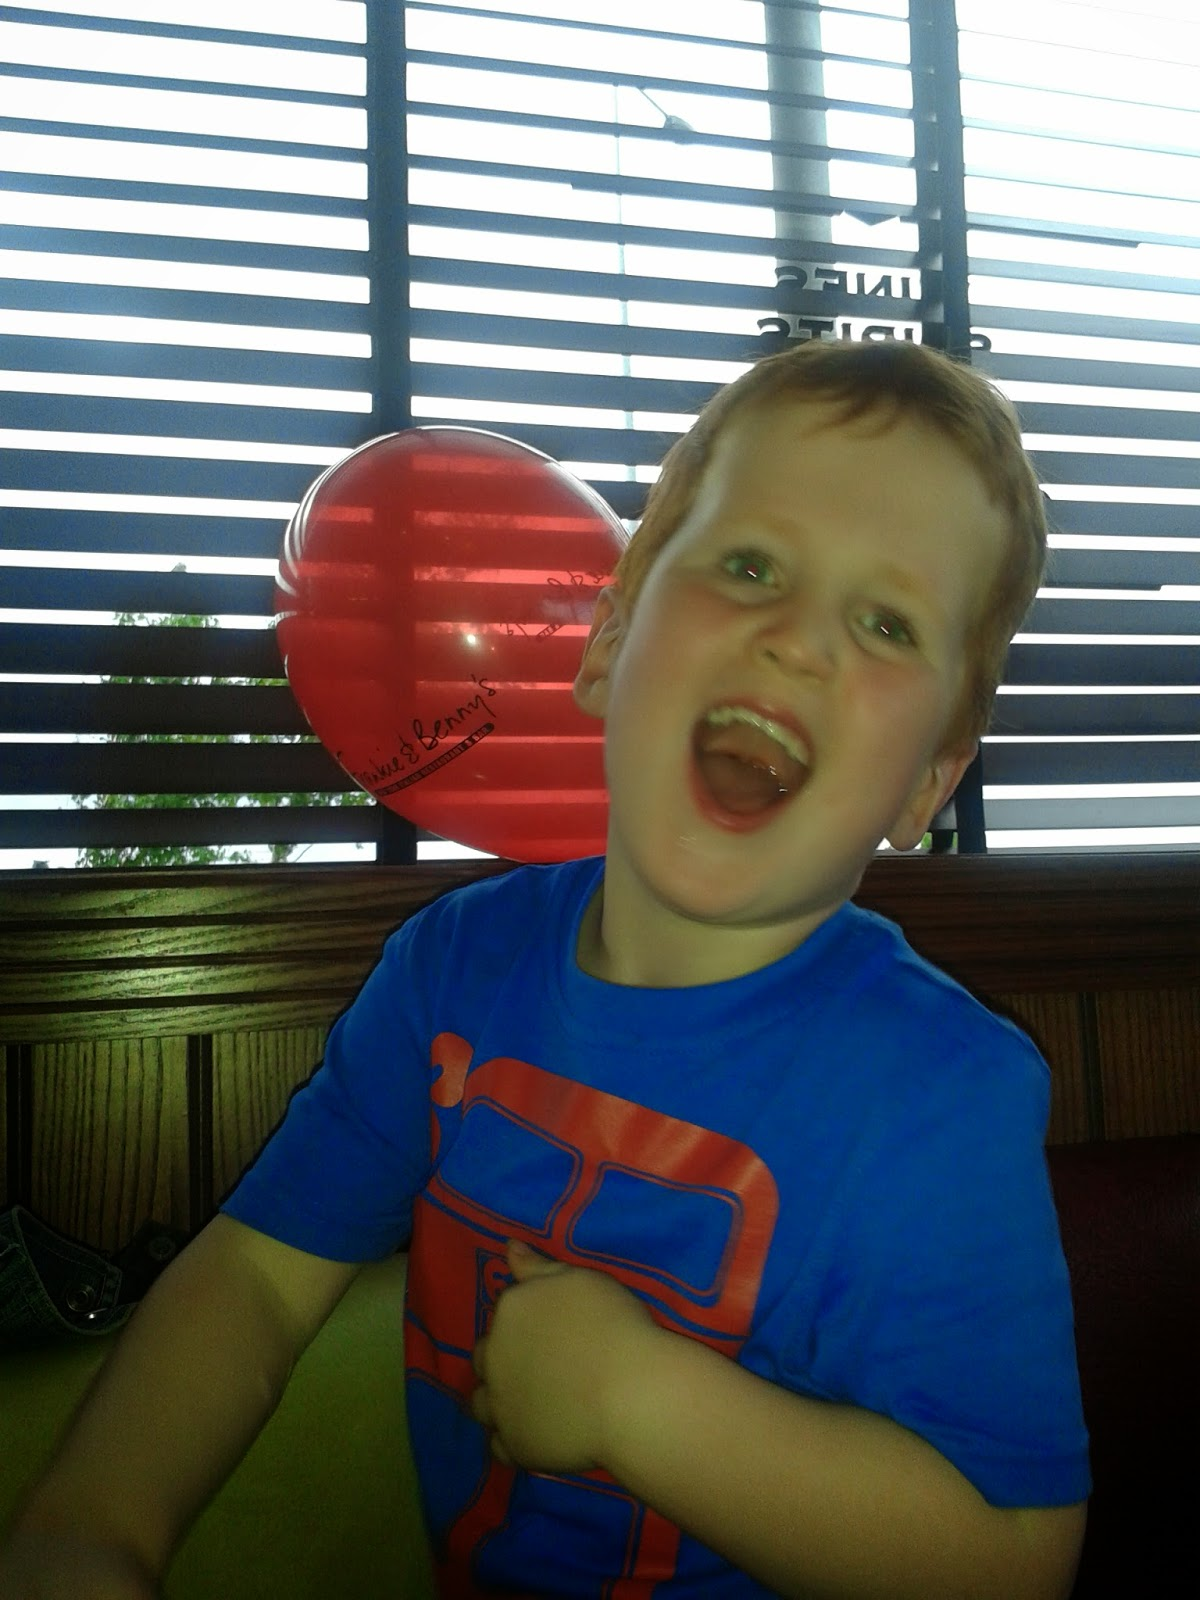 Ieuan at Frankie & Bennys in Cardiff